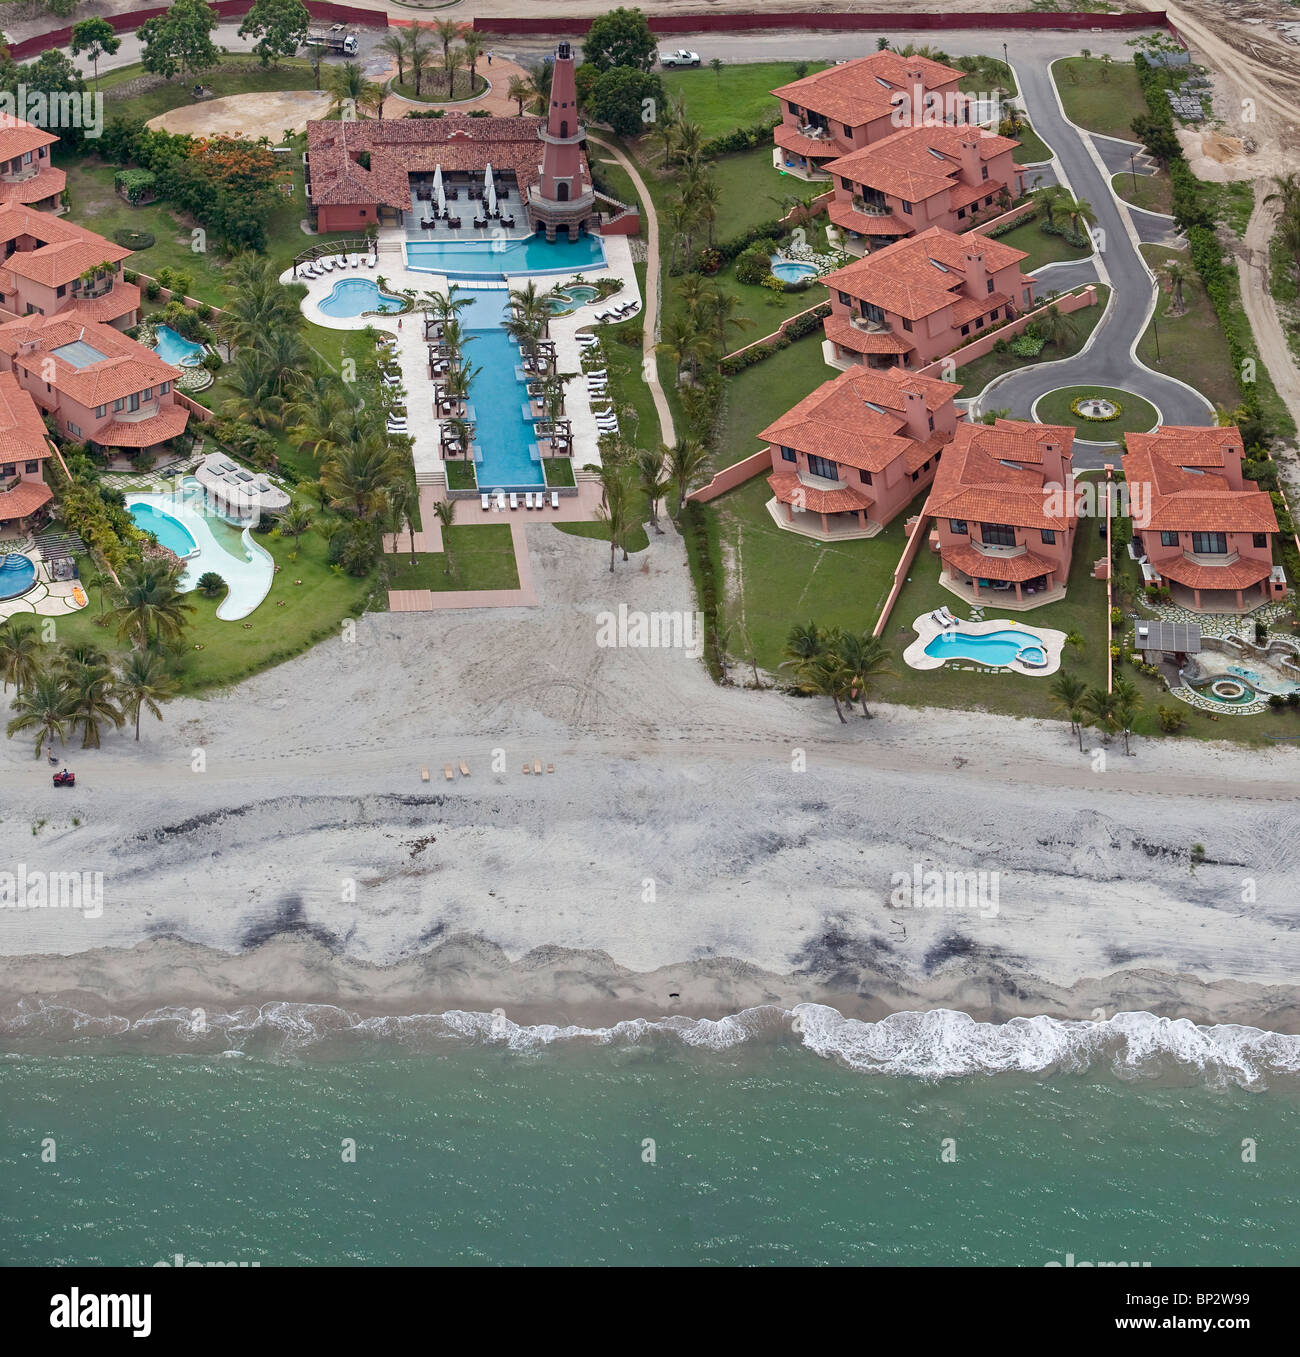 aerial view above residential development Pacific coast Republic of Panama - Stock Image